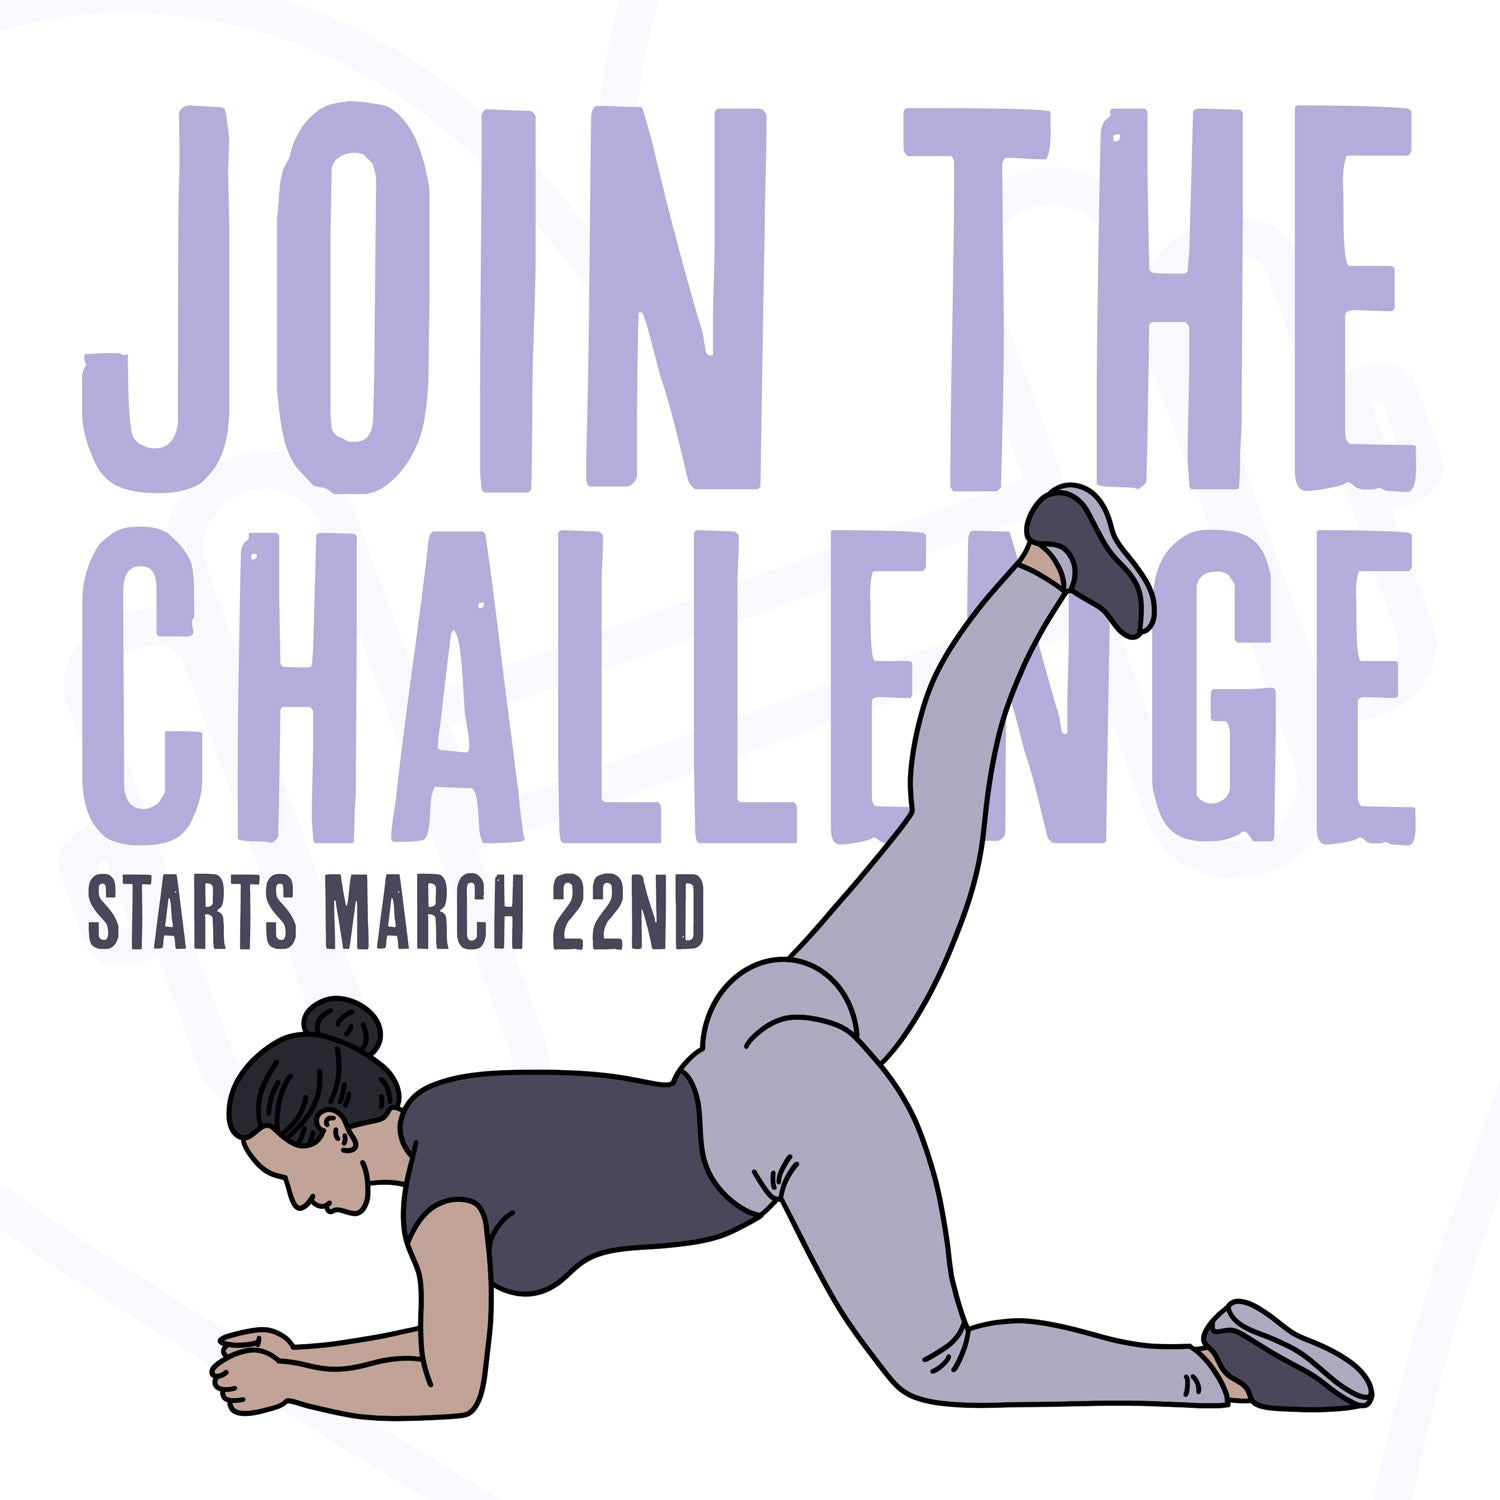 March 22nd Challenge